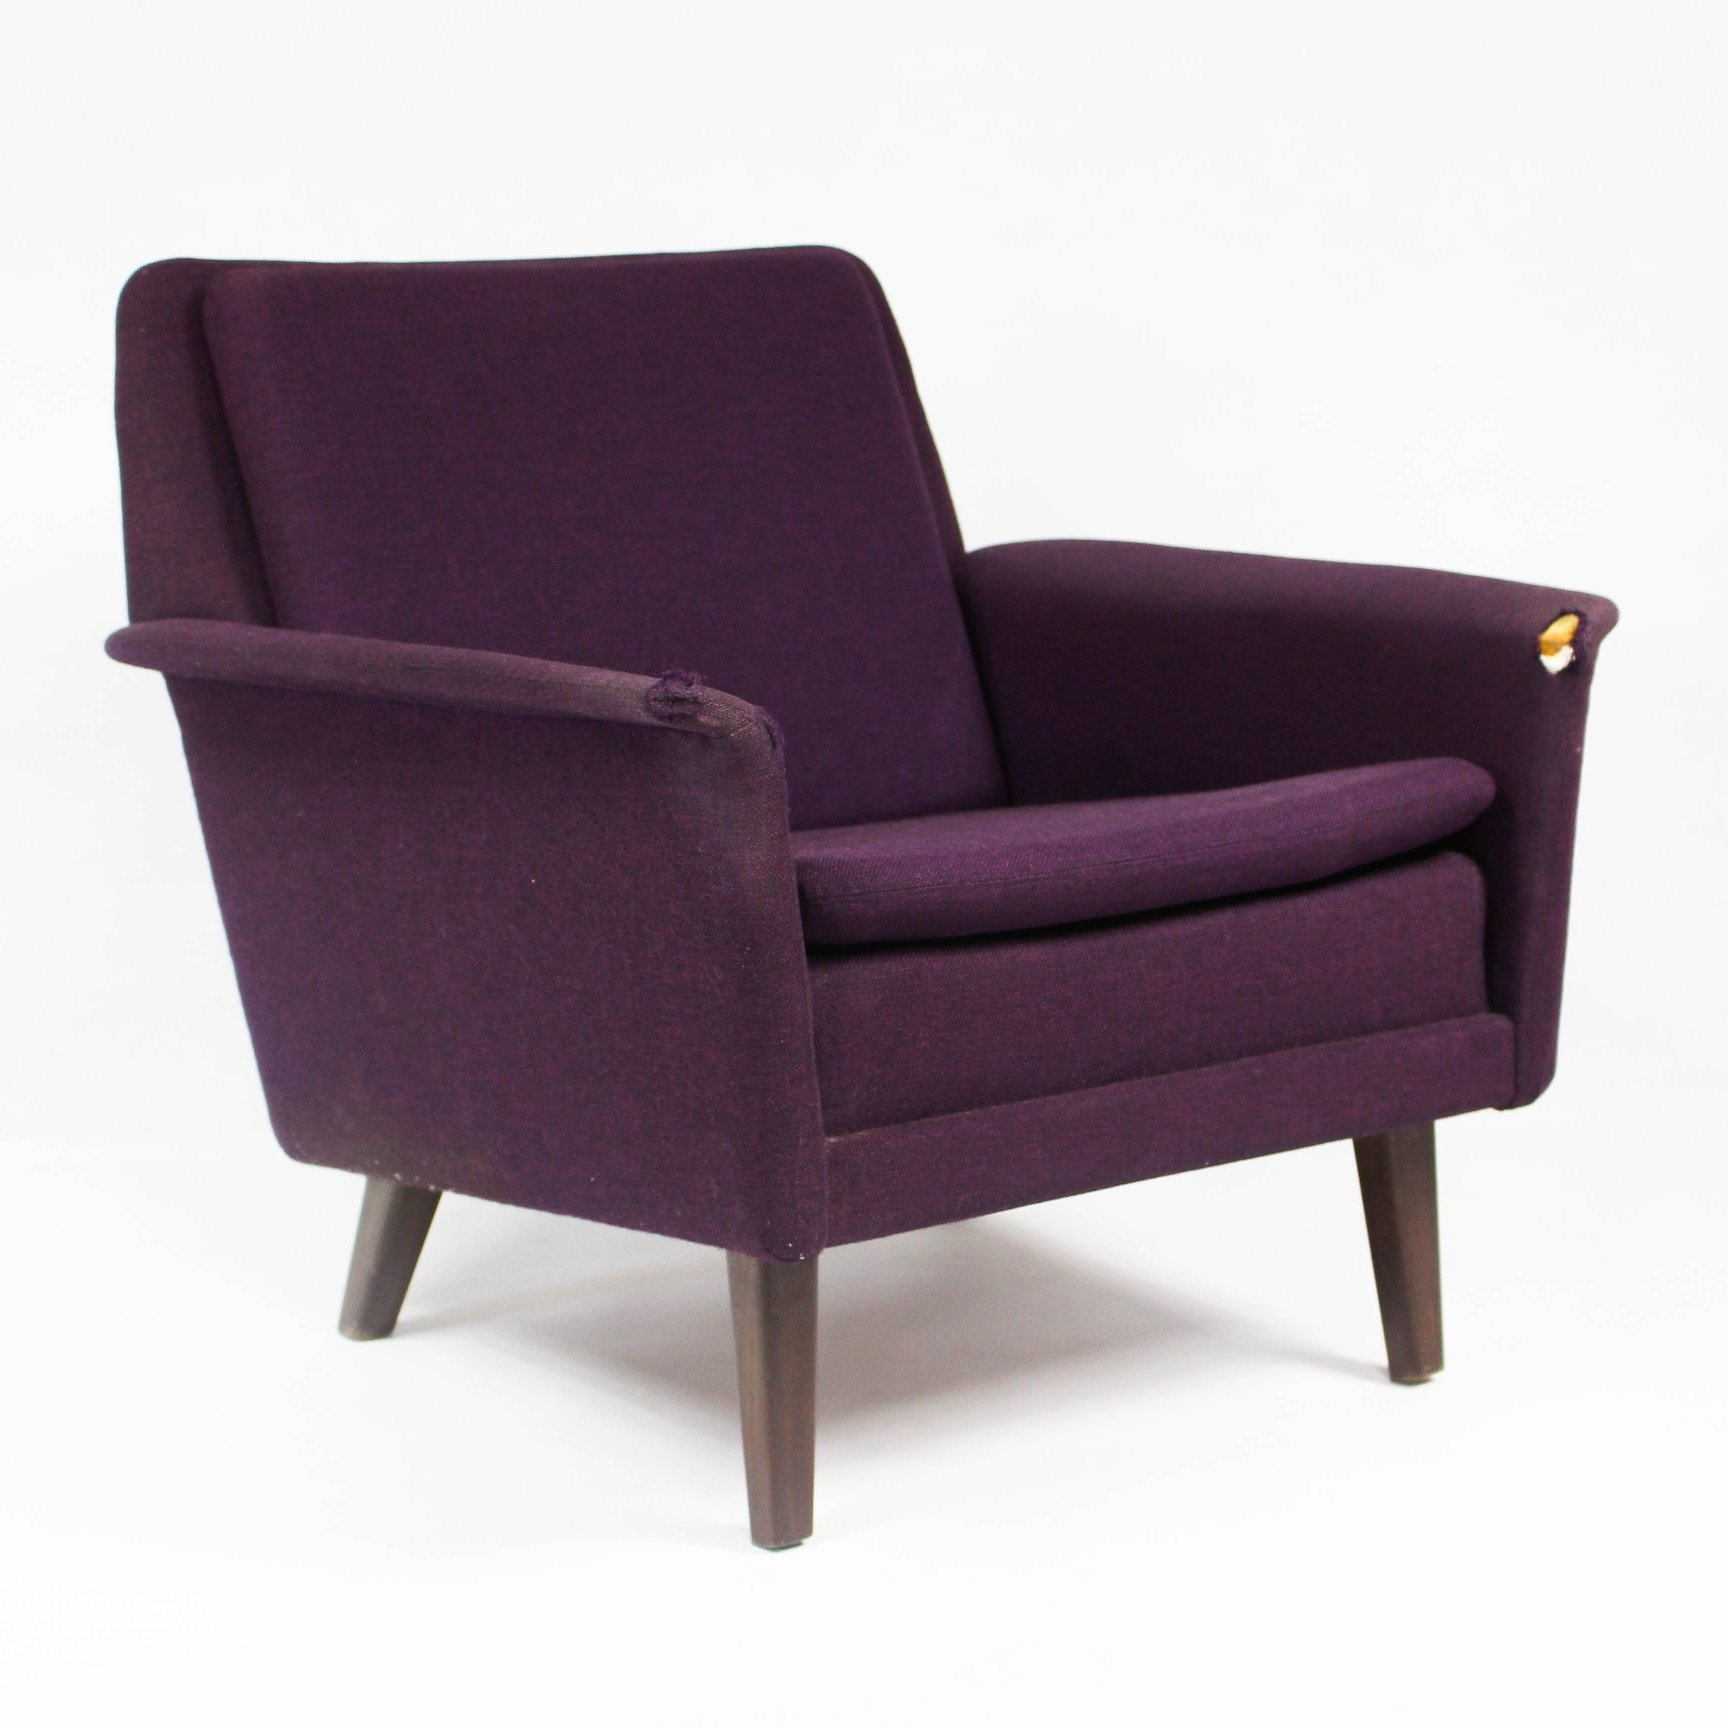 mid century danish lounge chair by folke ohlsson for fritz